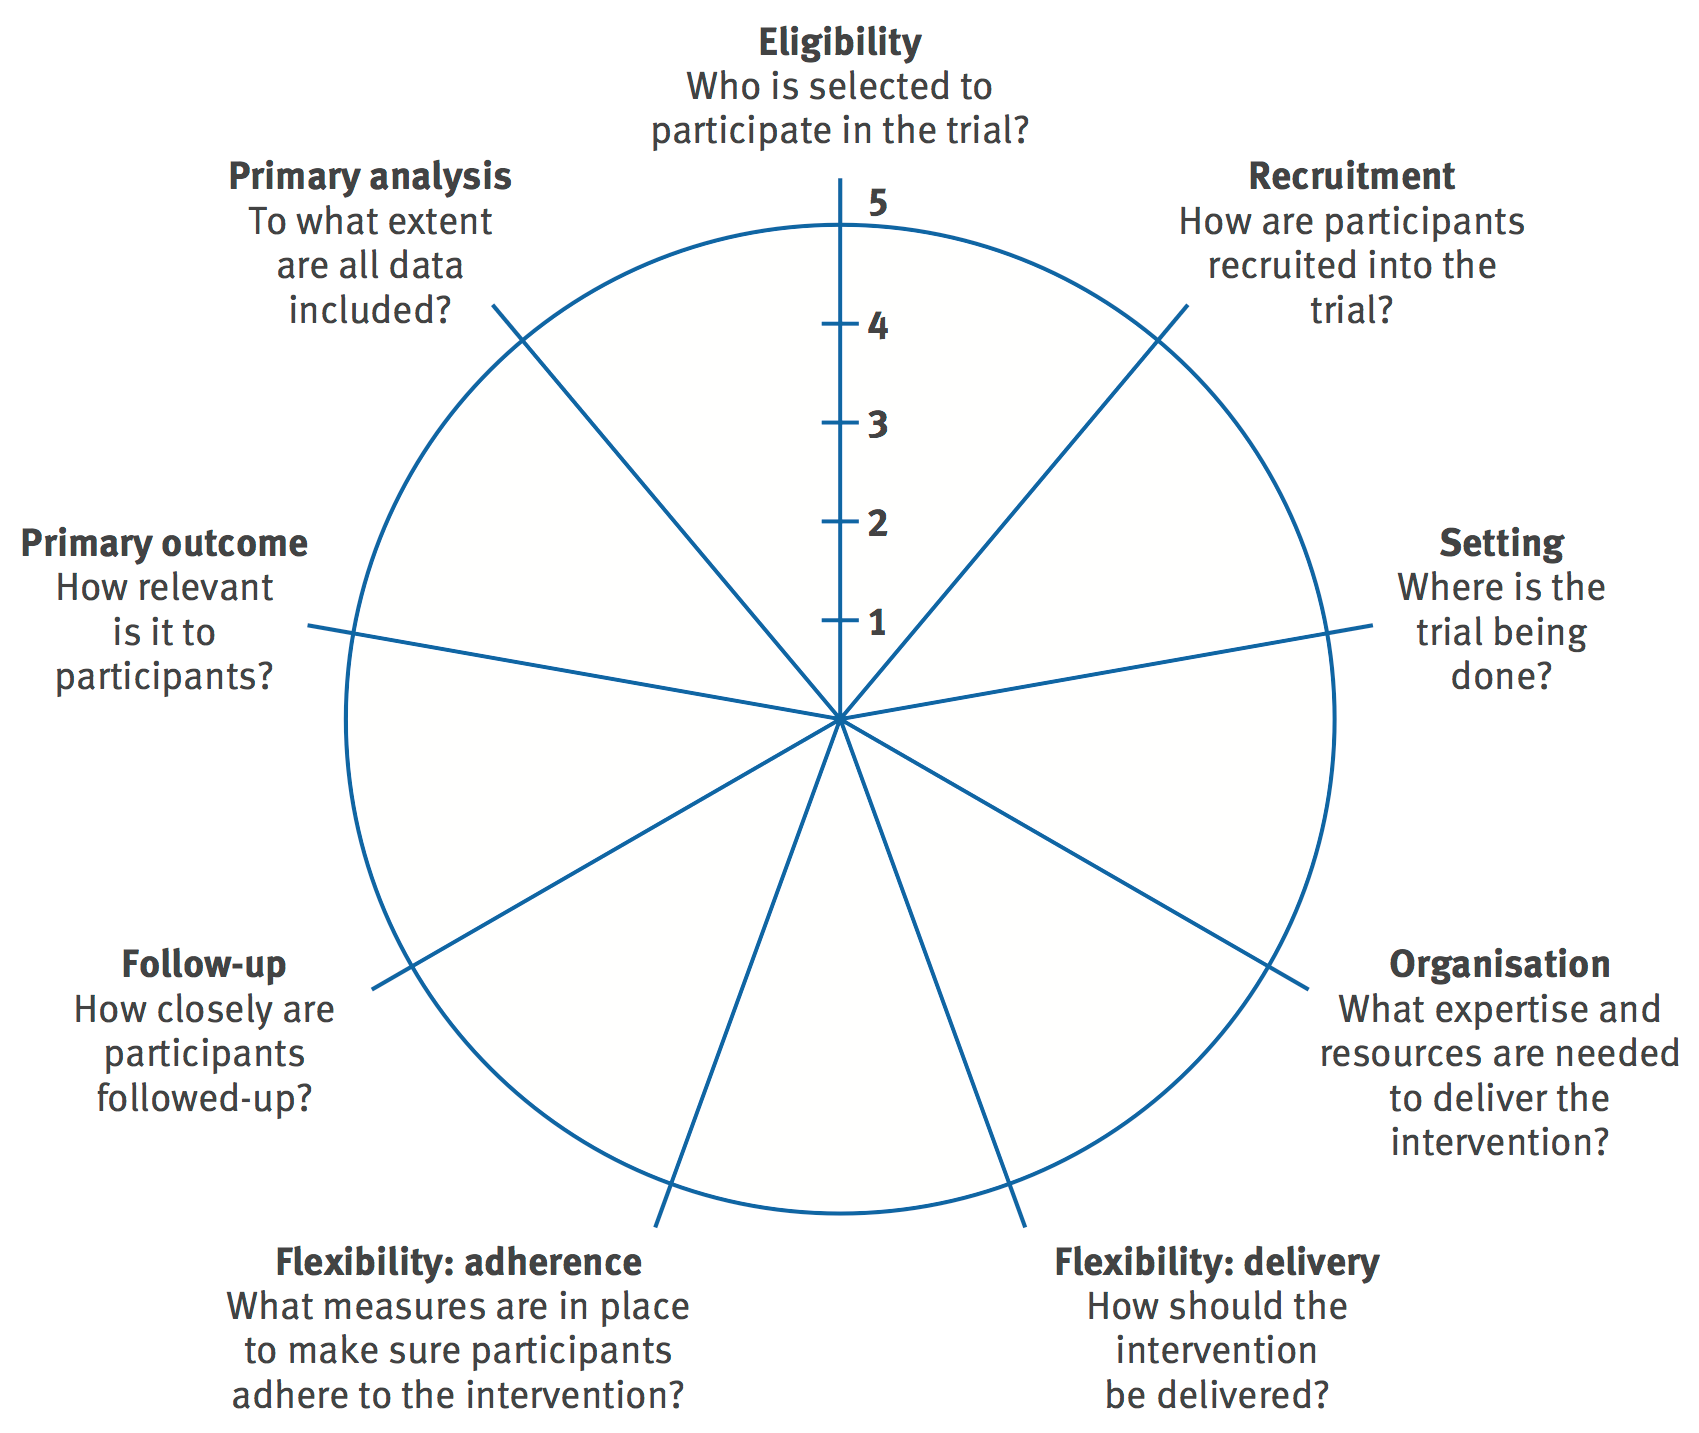 The PRECIS wheel